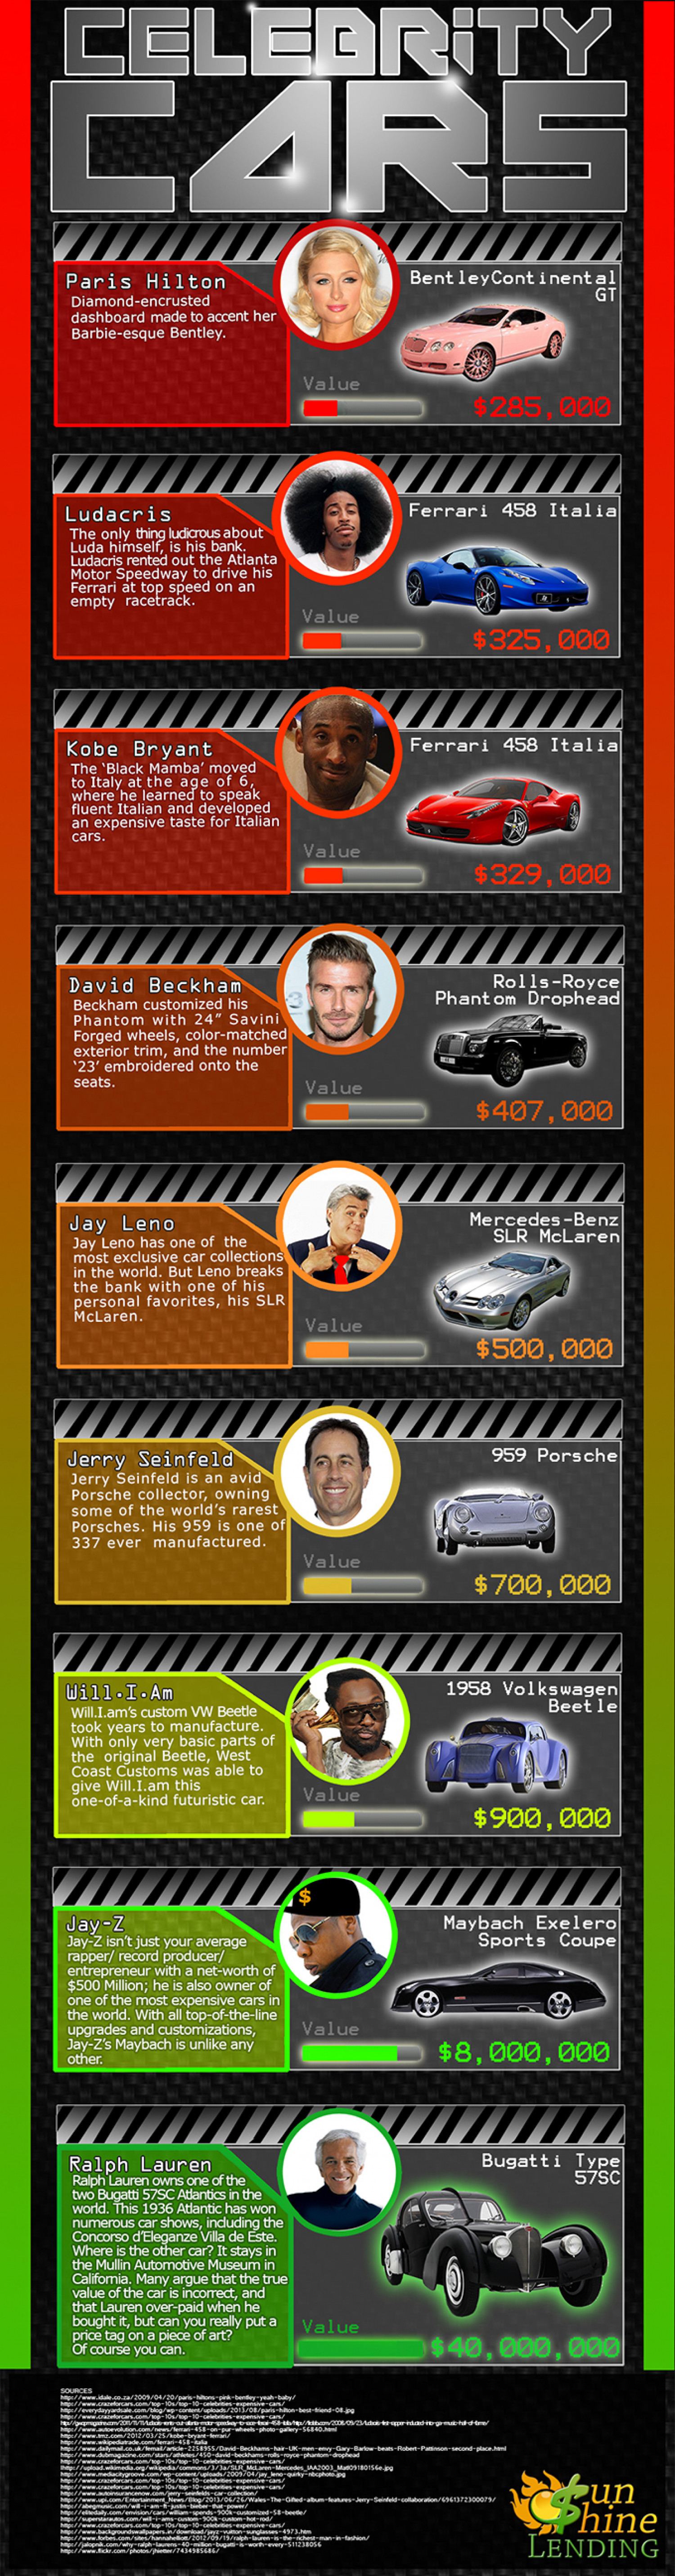 Celebrity Cars Infographic